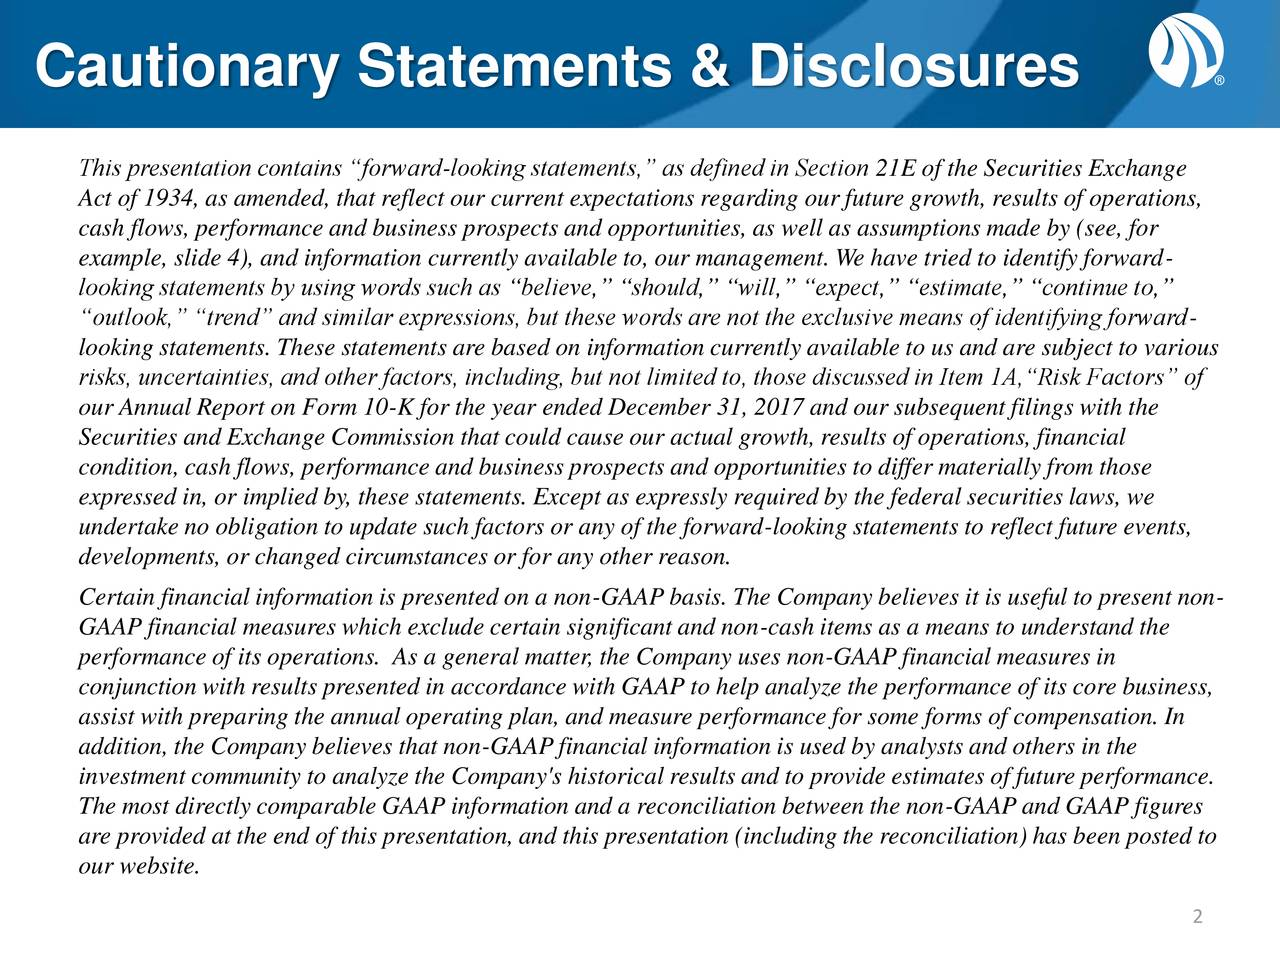 """This presentation contains """"forward-looking statements,"""" as defined in Section 21E of the Securities Exchange Act of 1934, as amended, that reflect our current expectations regarding our future growth, results of operations, cash flows, performance and business prospects and opportunities, as well as assumptions made by (see, for example, slide 4), and information currently available to, our management. We have tried to identify forward- looking statements by using words such as """"believe,"""" """"should,"""" """"will,"""" """"expect,"""" """"estimate,"""" """"continue to,"""" """"outlook,"""" """"trend"""" and similar expressions, but these words are not the exclusive means of identifying forward- looking statements. These statements are based on information currently available to us and are subject to various risks, uncertainties, and other factors, including, but not limited to, those discussed in Item 1A,""""Risk Factors"""" of our Annual Report on Form 10-K for the year ended December 31, 2017 and our subsequent filings with the Securities and Exchange Commission that could cause our actual growth, results of operations, financial condition, cash flows, performance and business prospects and opportunities to differ materially from those expressed in, or implied by, these statements. Except as expressly required by the federal securities laws, we undertake no obligation to update such factors or any of the forward-looking statements to reflect future events, developments, or changed circumstances or for any other reason. Certain financial information is presented on a non-GAAP basis. The Company believes it is useful to present non- GAAP financial measures which exclude certain significant and non-cash items as a means to understand the performance of its operations. As a general matter, the Company uses non-GAAP financial measures in conjunction with results presented in accordance with GAAP to help analyze the performance of its core business, assist with preparing the annual operating plan, and measure perform"""